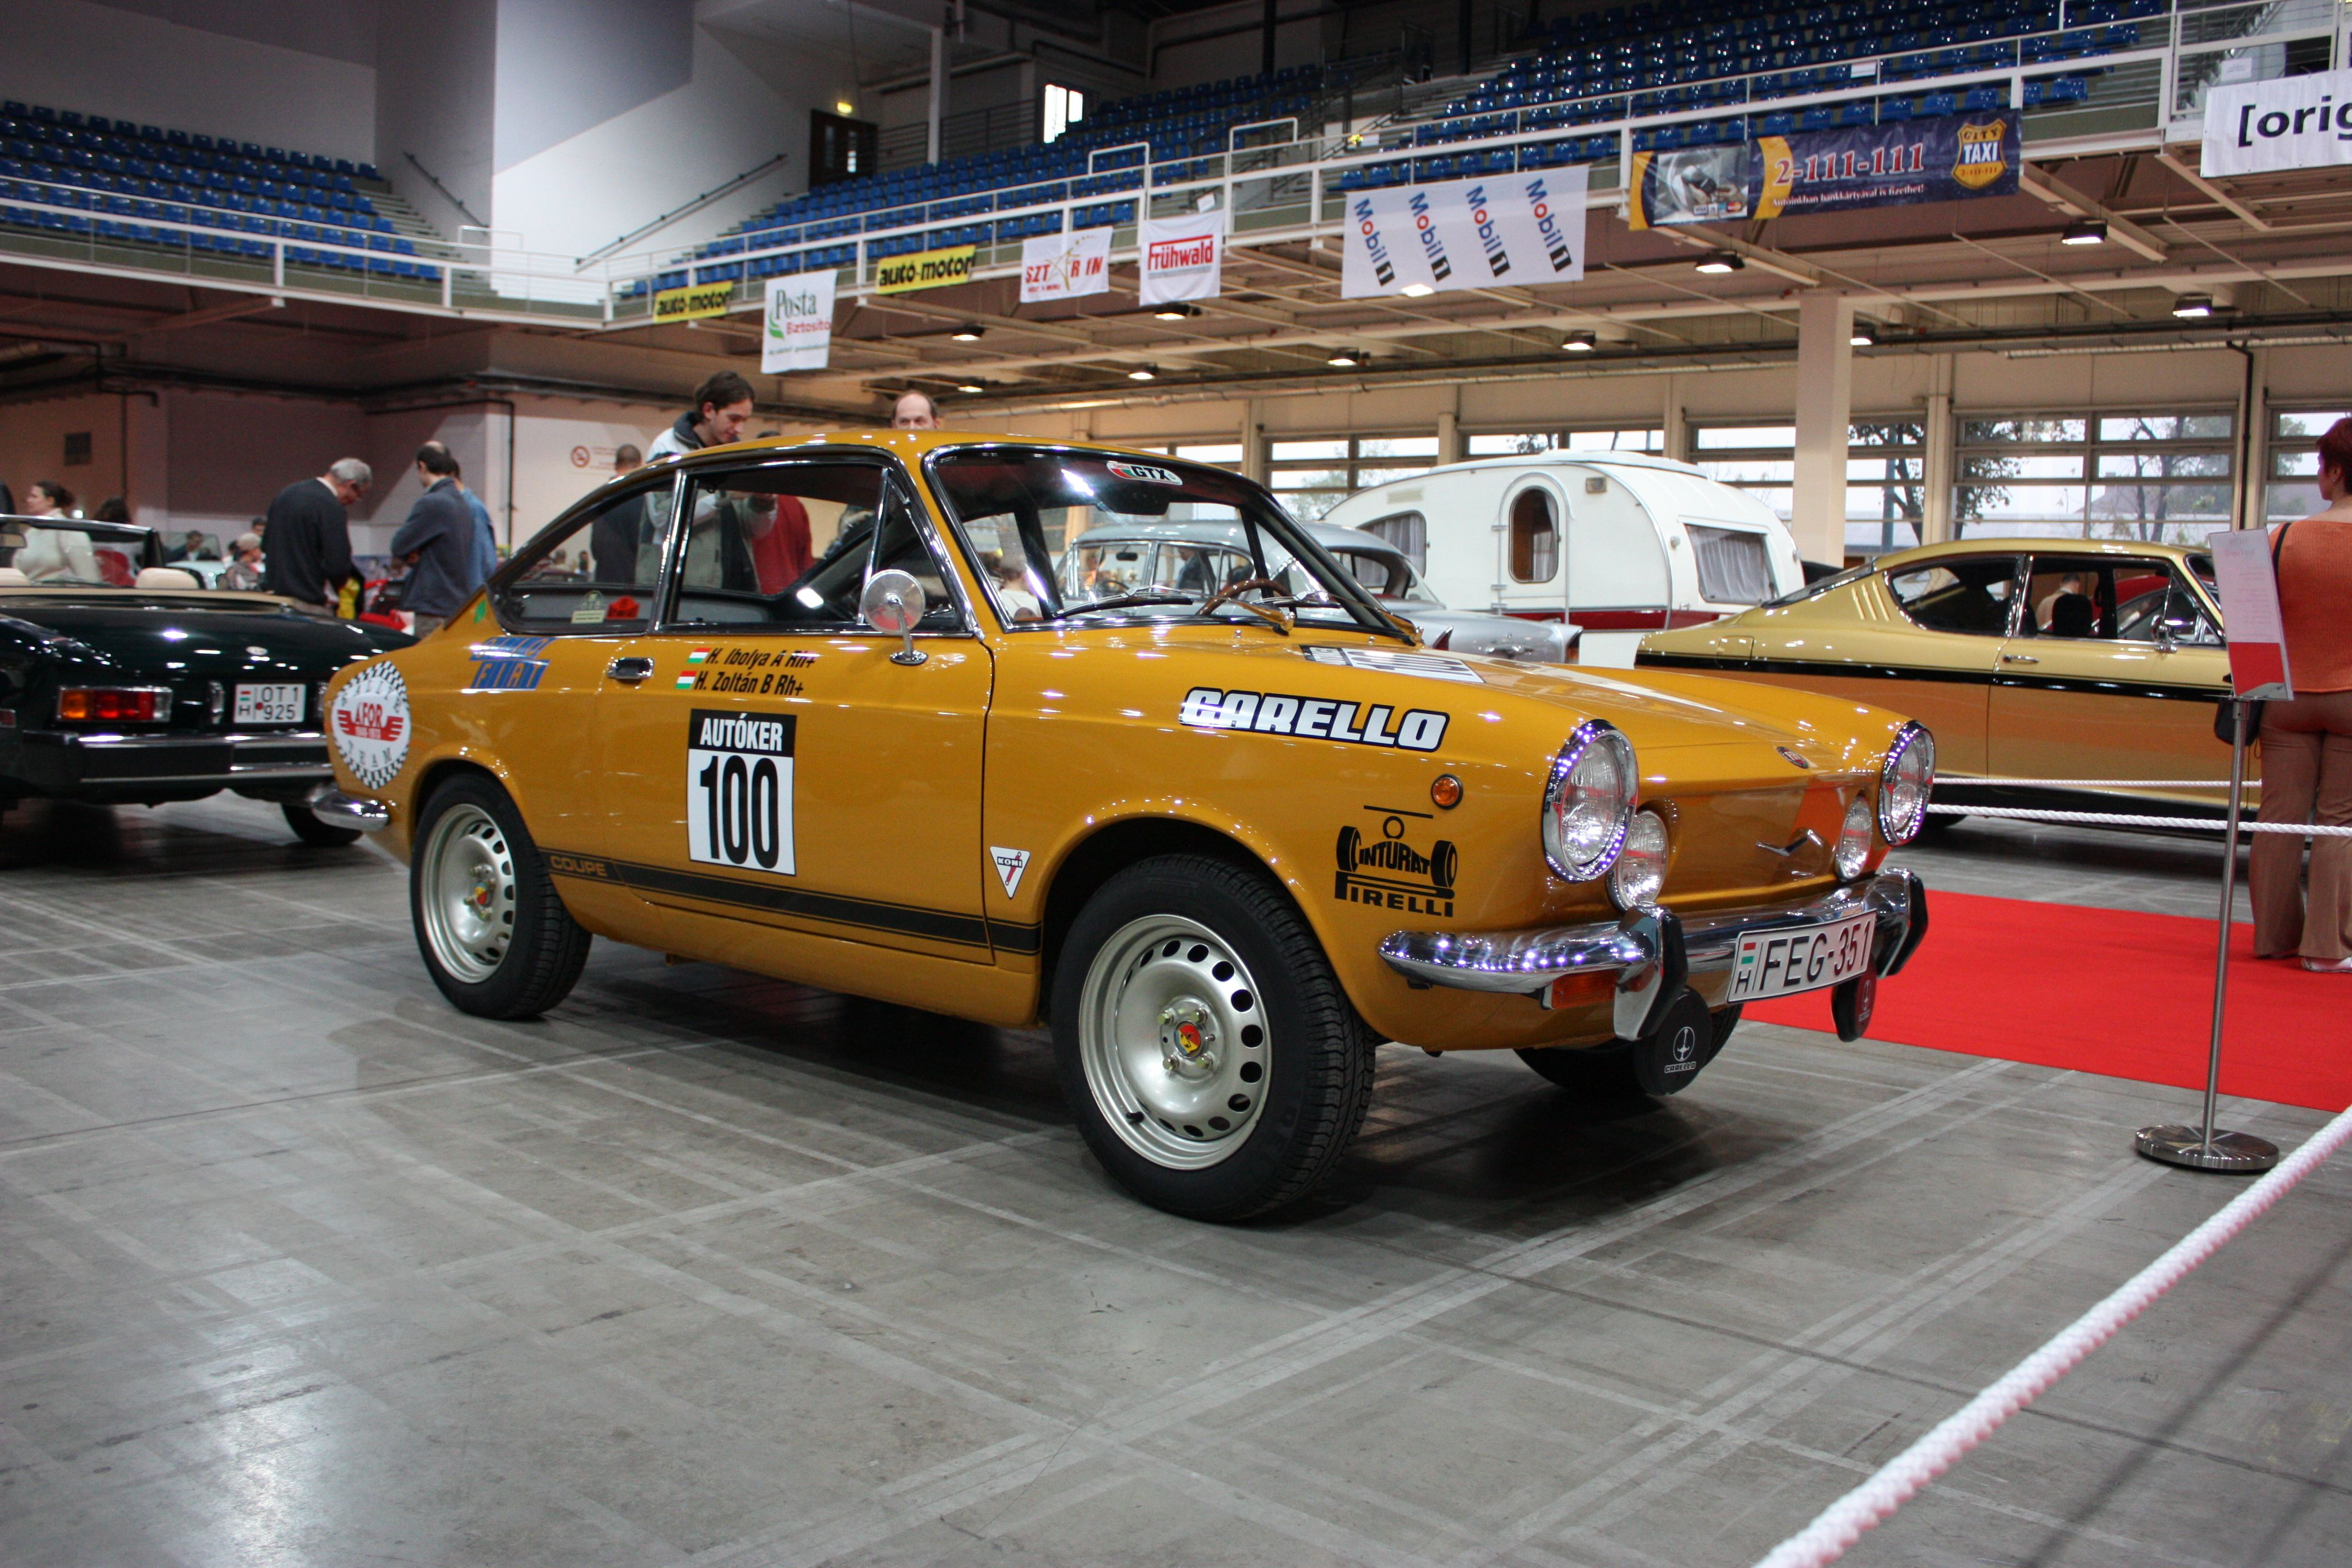 1968 Fiat 850 850 Special With Roulotte Fiat 850 Simca Roulotte